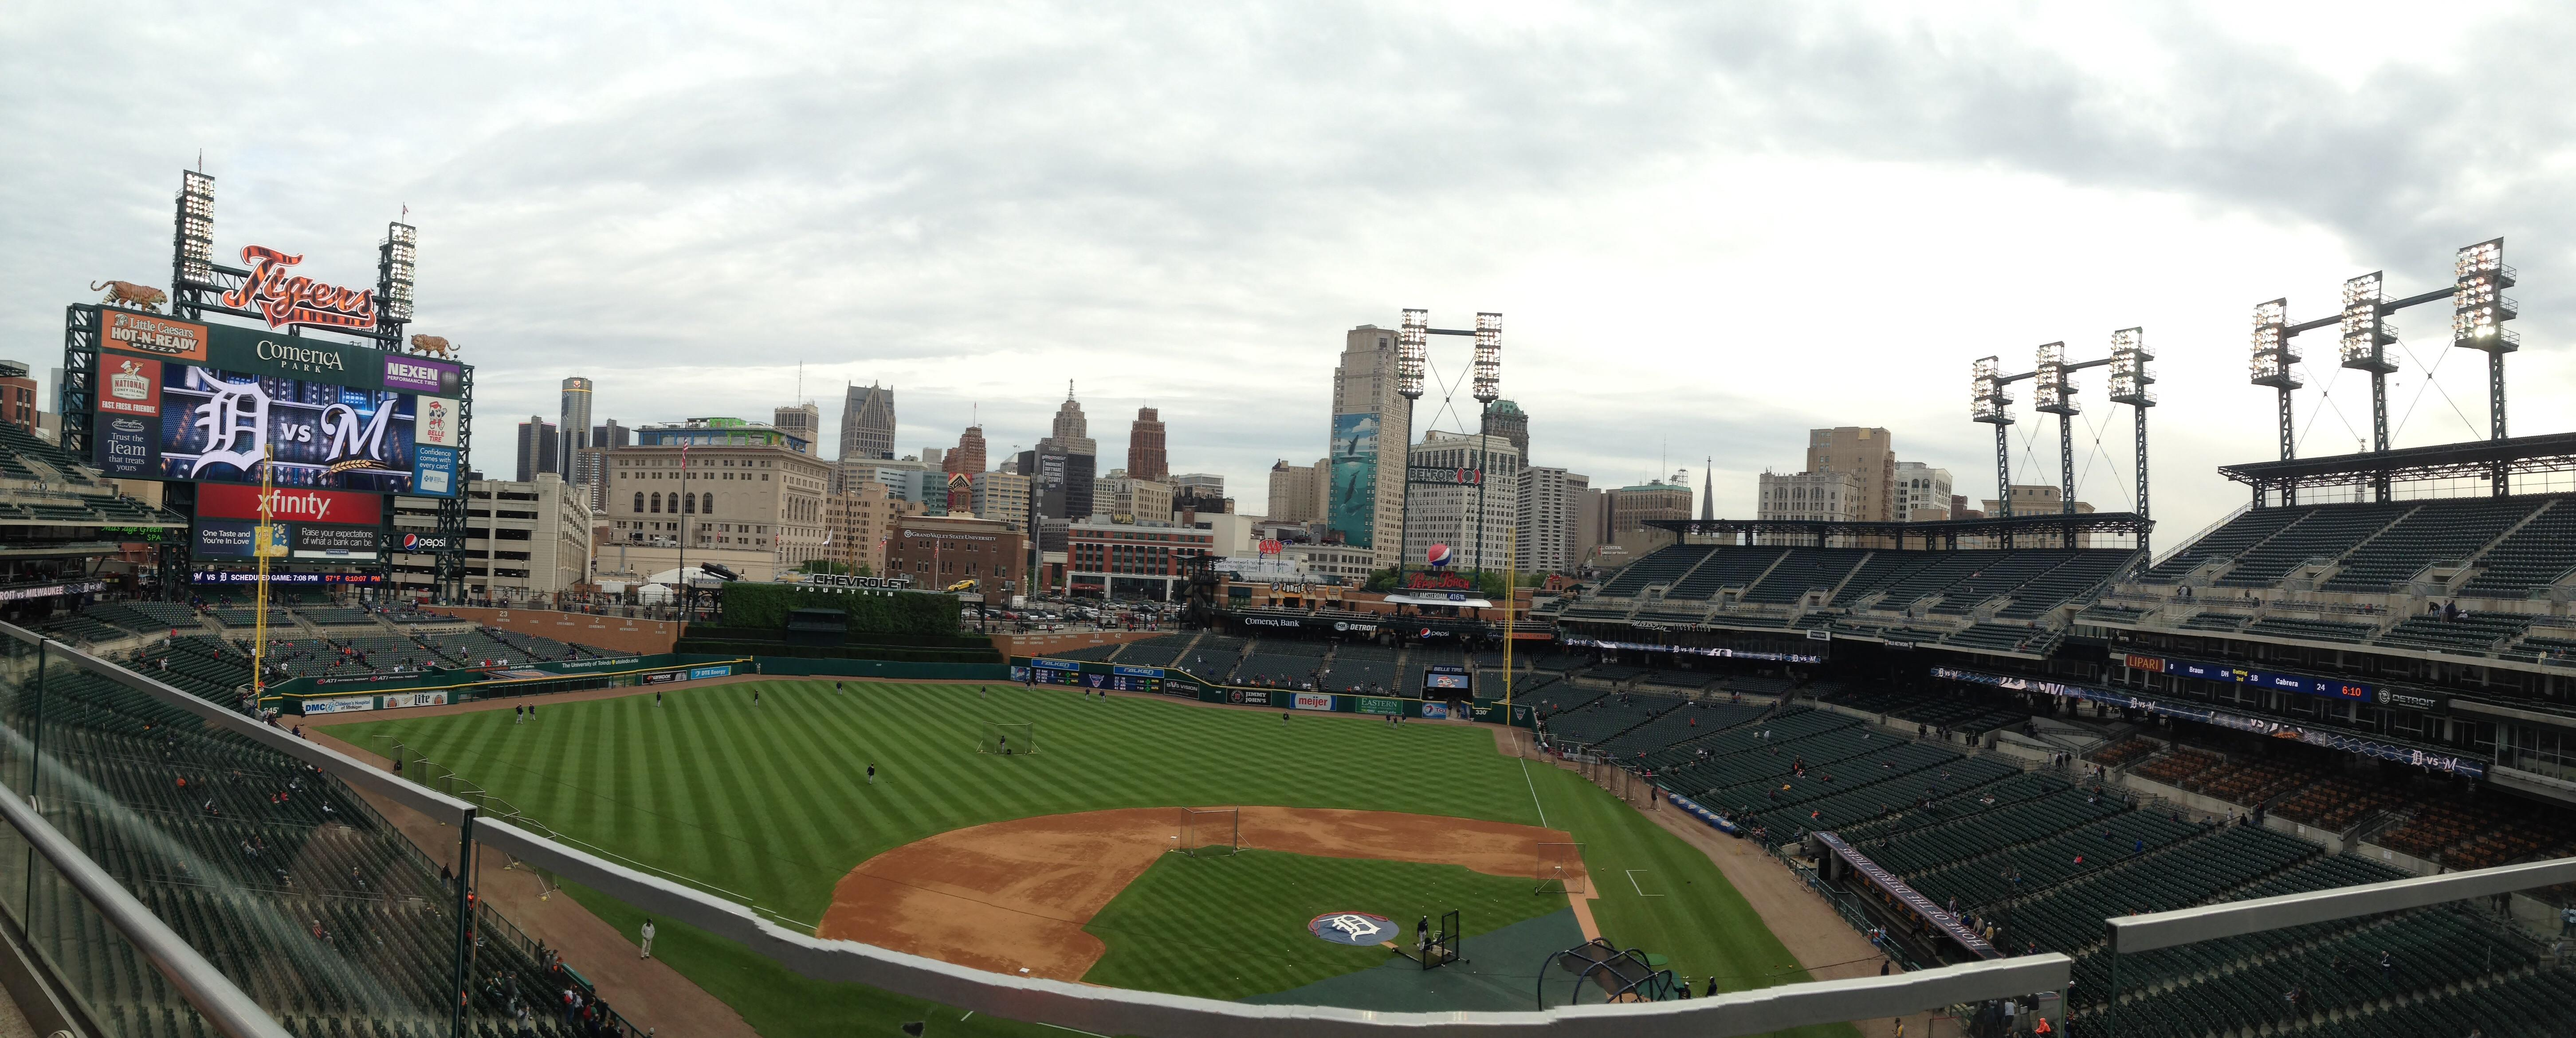 Comerica Park Section 332 Row A Seat 11